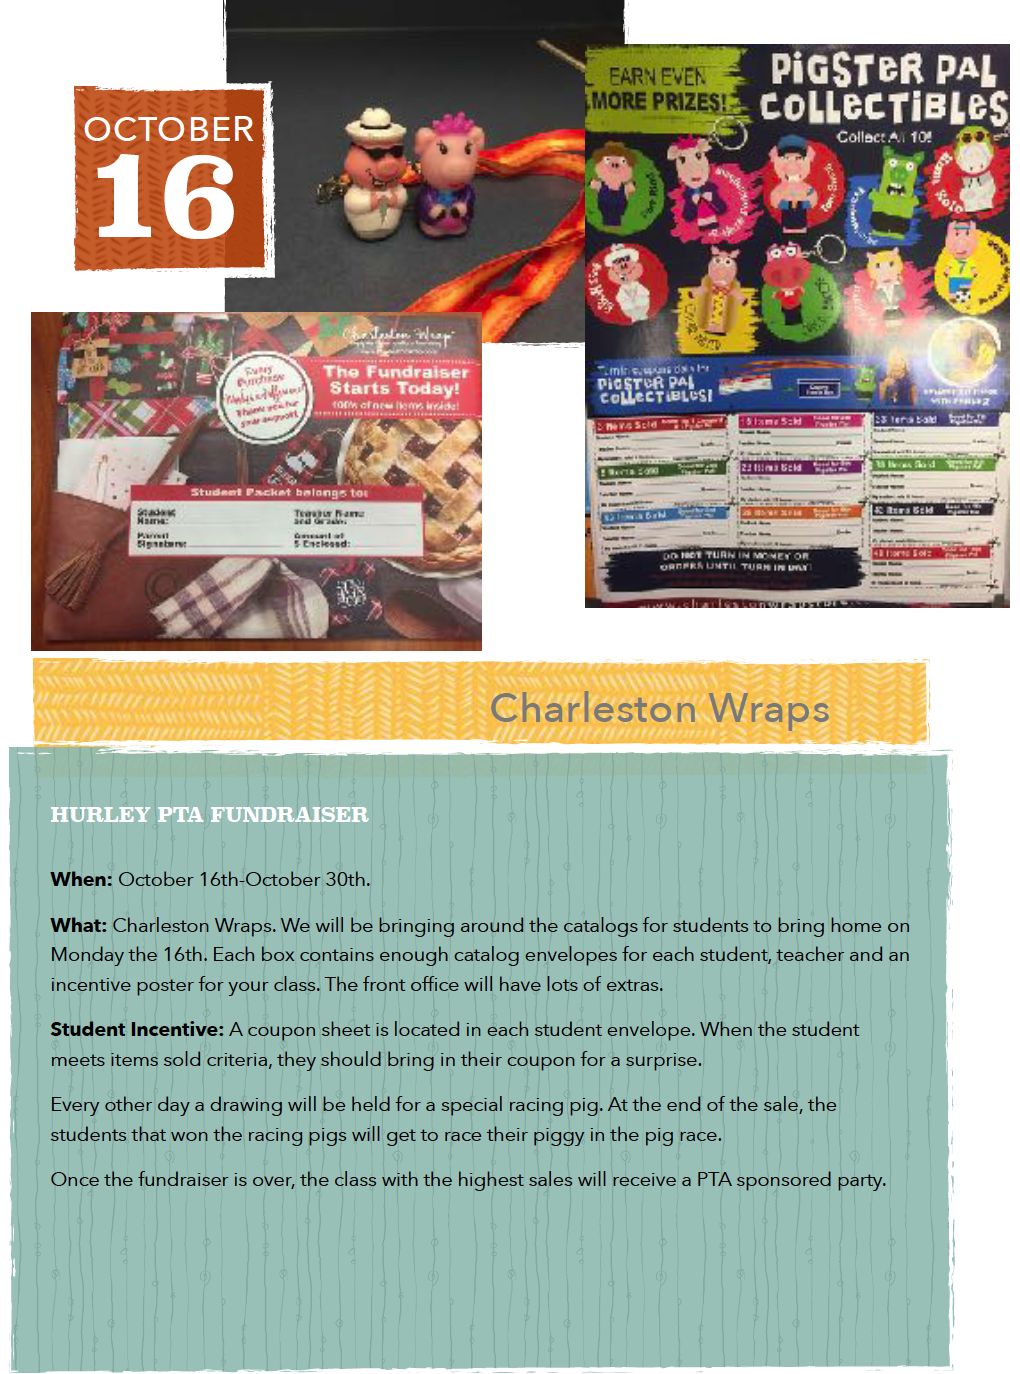 Charleston Wraps Fundraiser